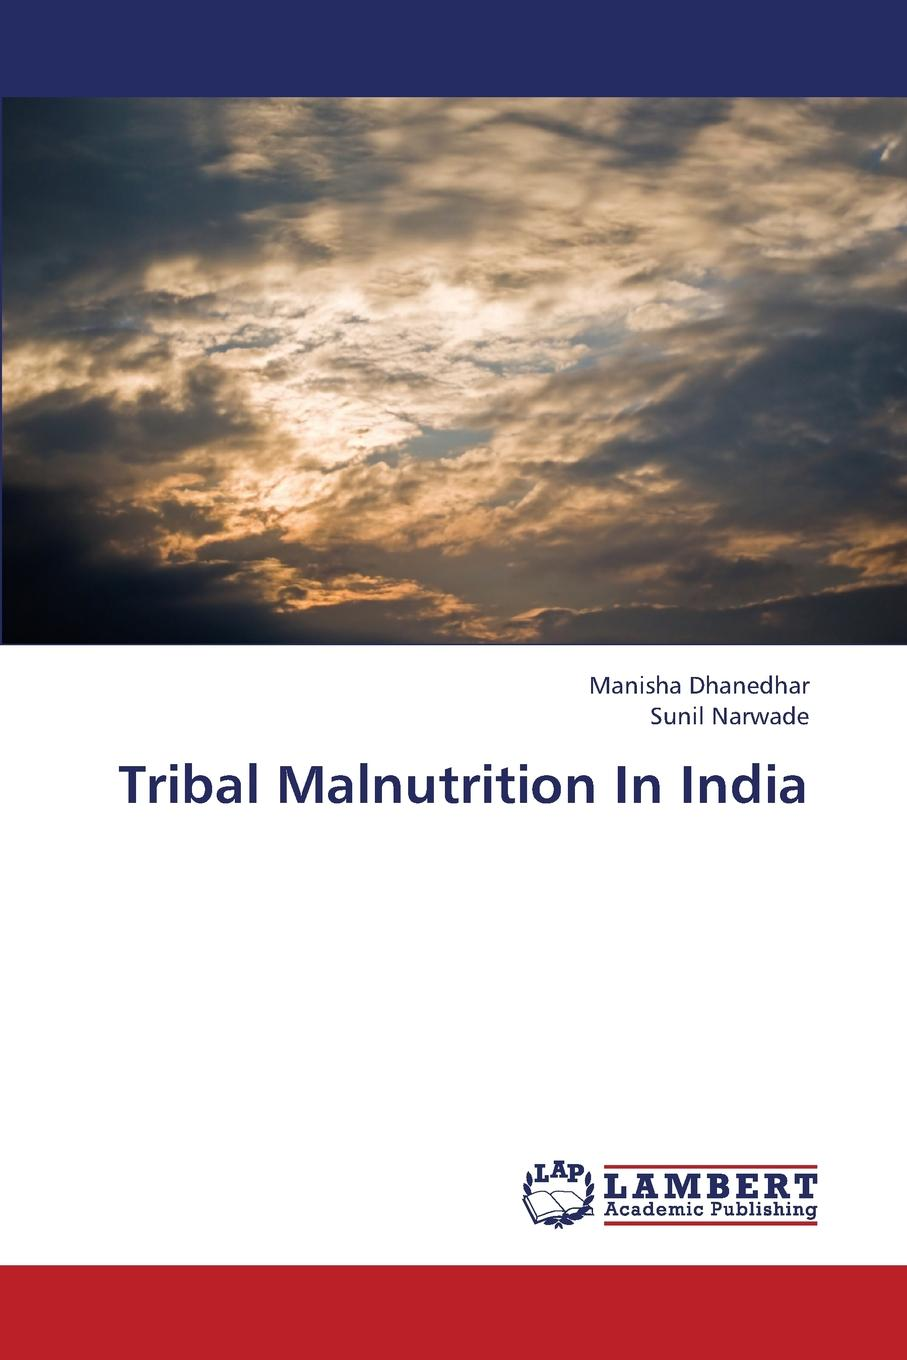 Dhanedhar Manisha, Narwade Sunil Tribal Malnutrition in India rembrandt and the inspiration of india